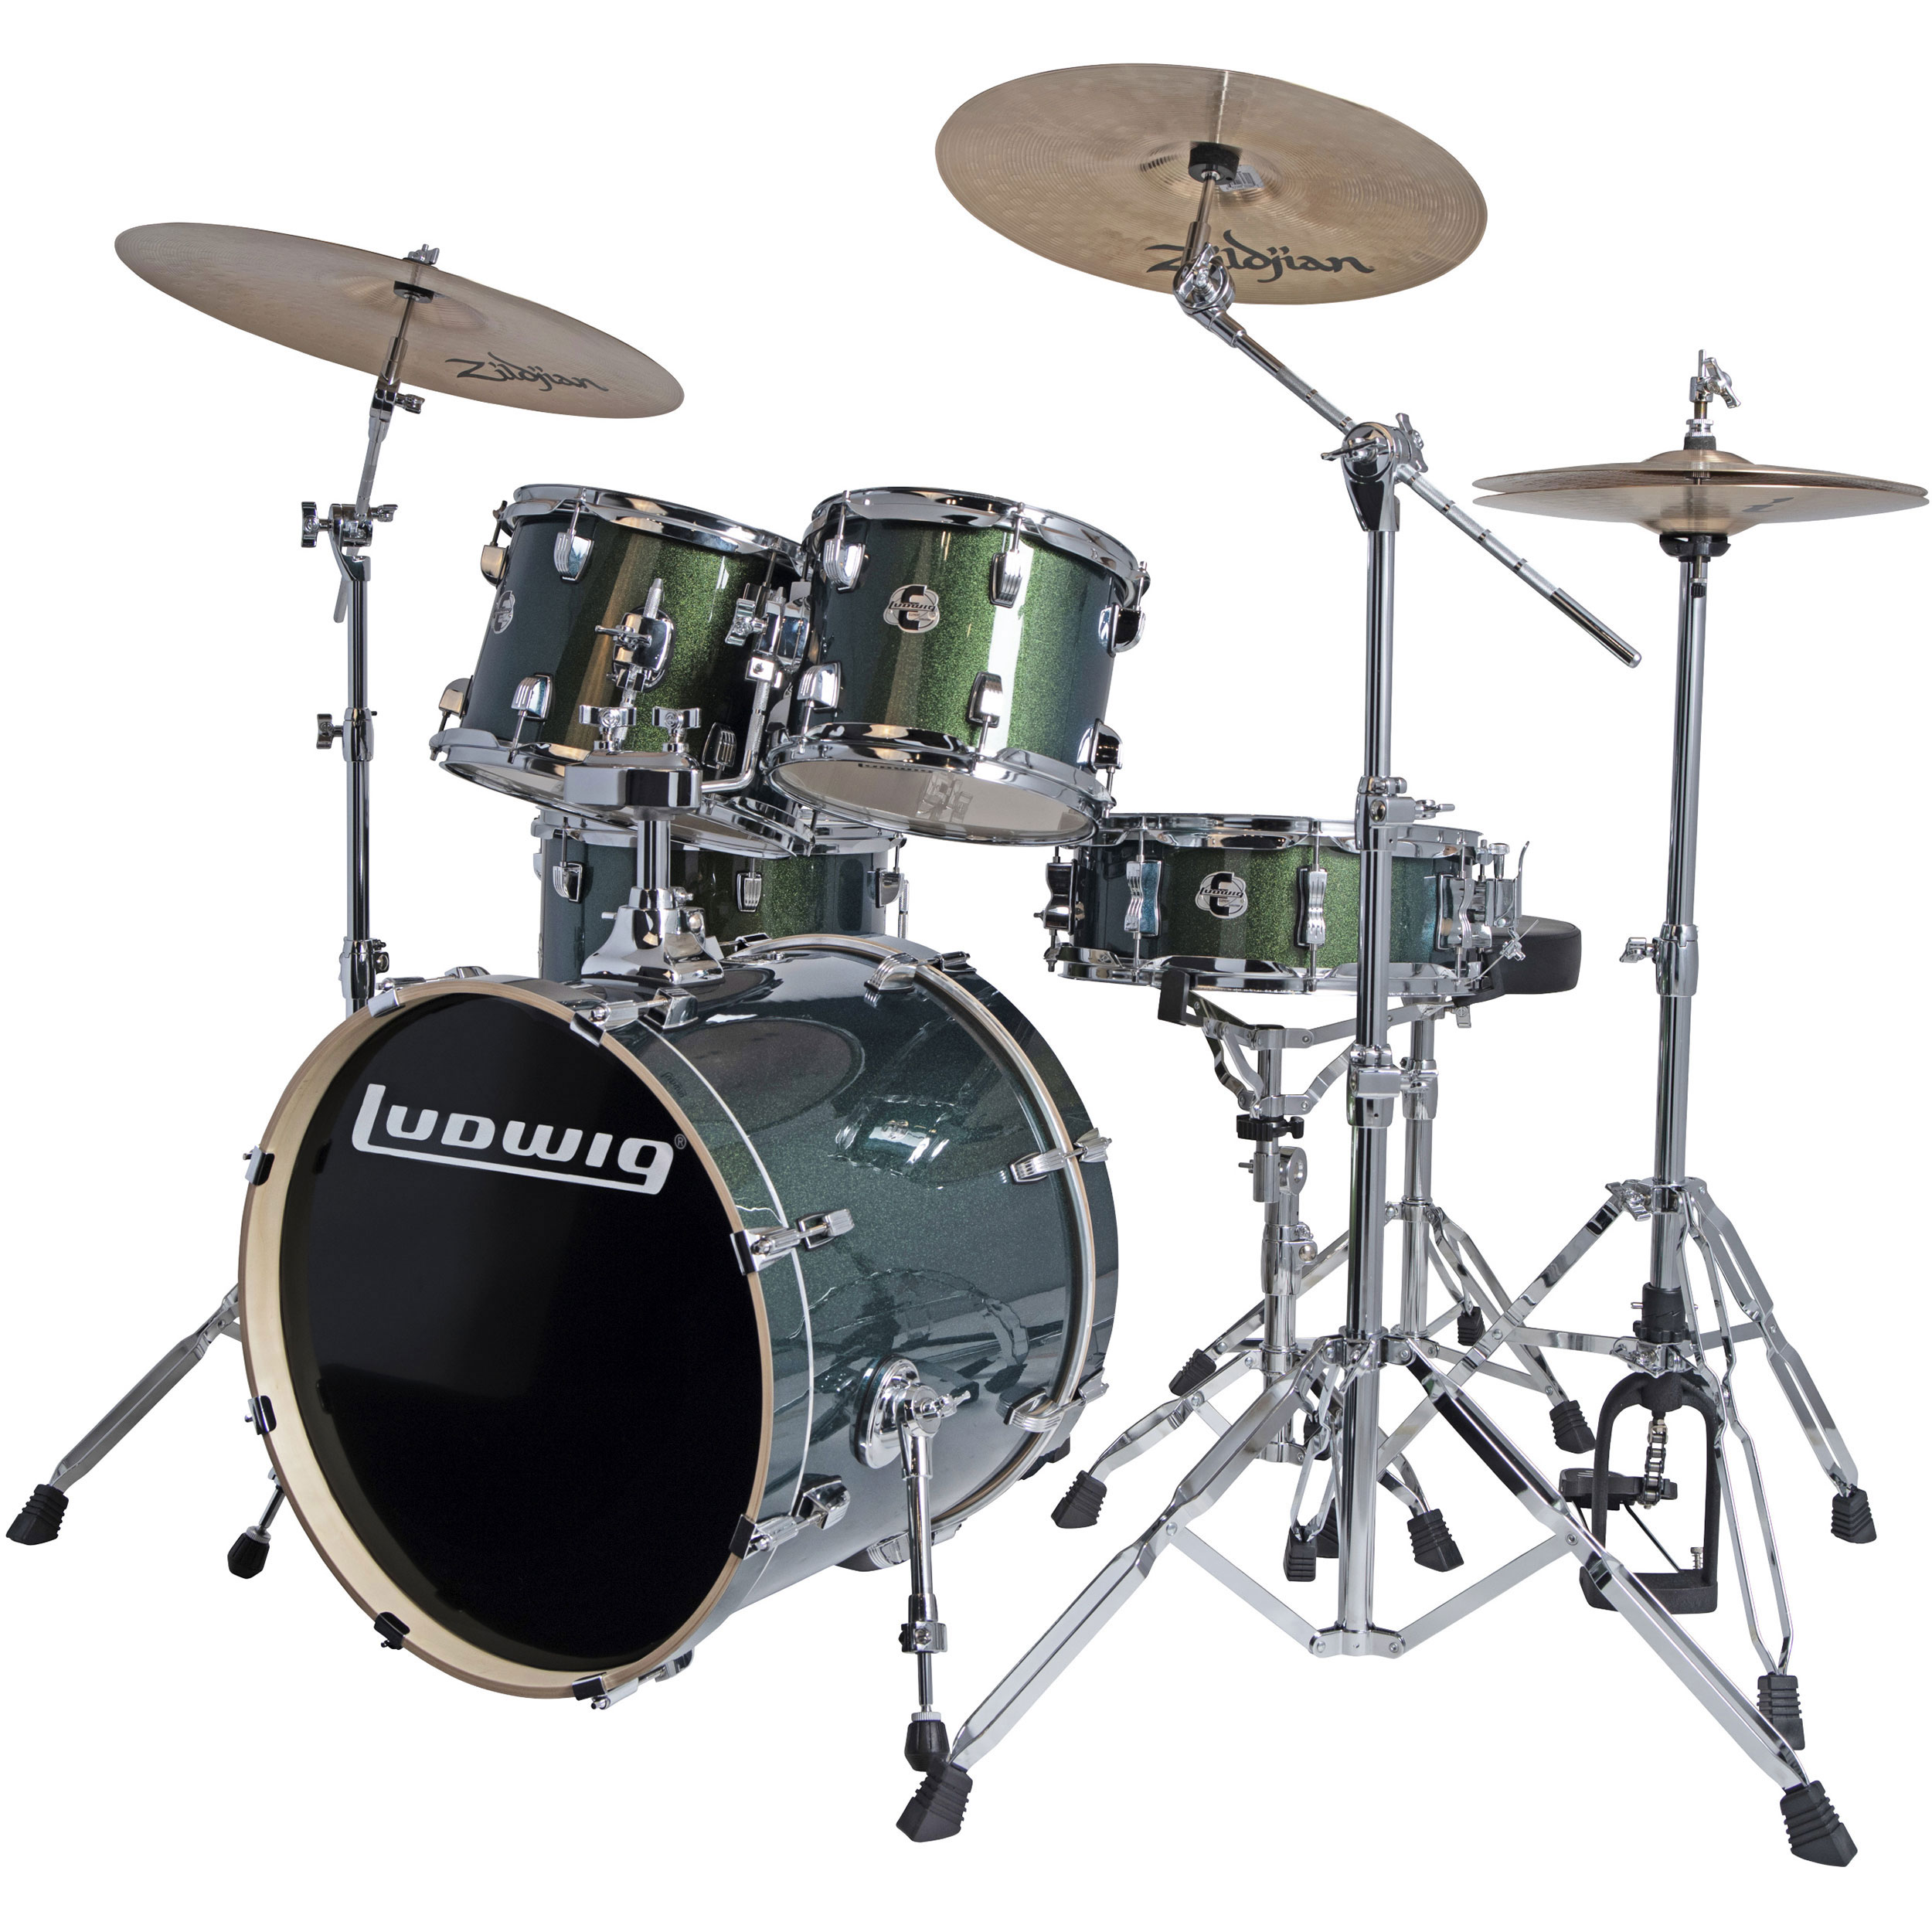 "Ludwig Evolution 5-Piece Drum Set with Hardware & Zildjian I Series Cymbals (20"" Bass, 10/12/14"" Toms, 14"" Snare)"